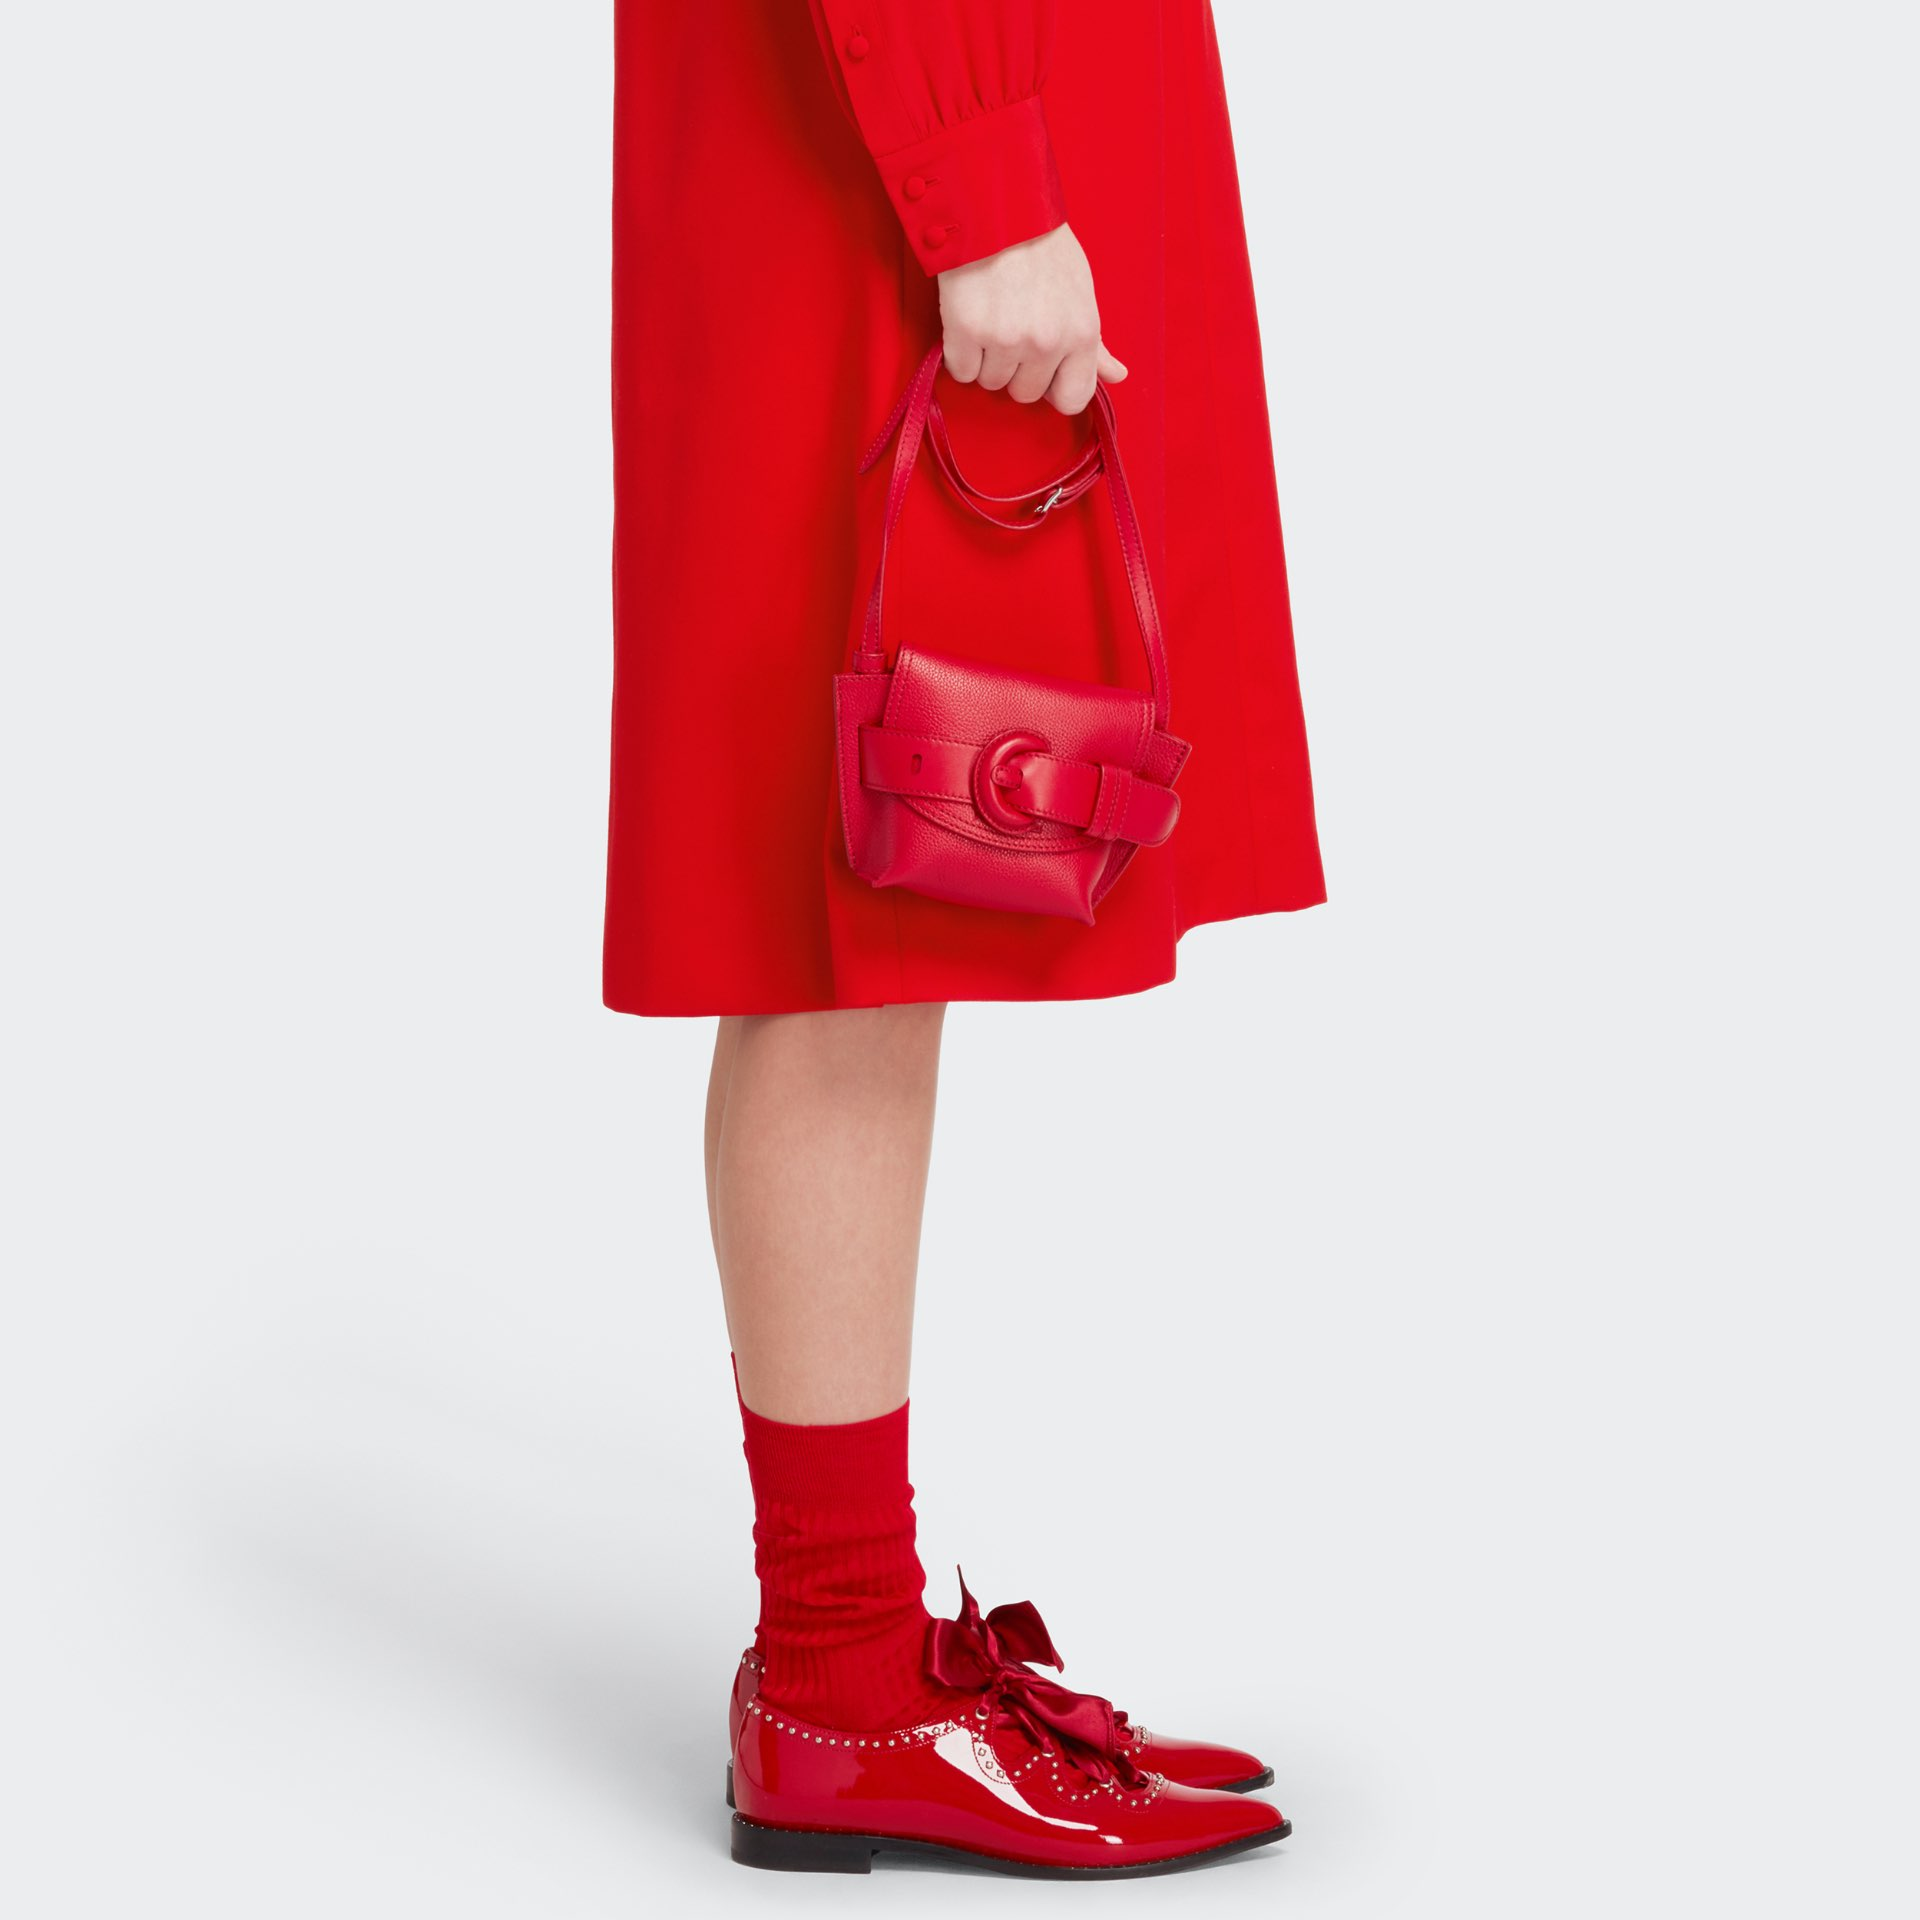 Womenswear model wearing red J&M dress with a red leather bag, red shoes and ed socks